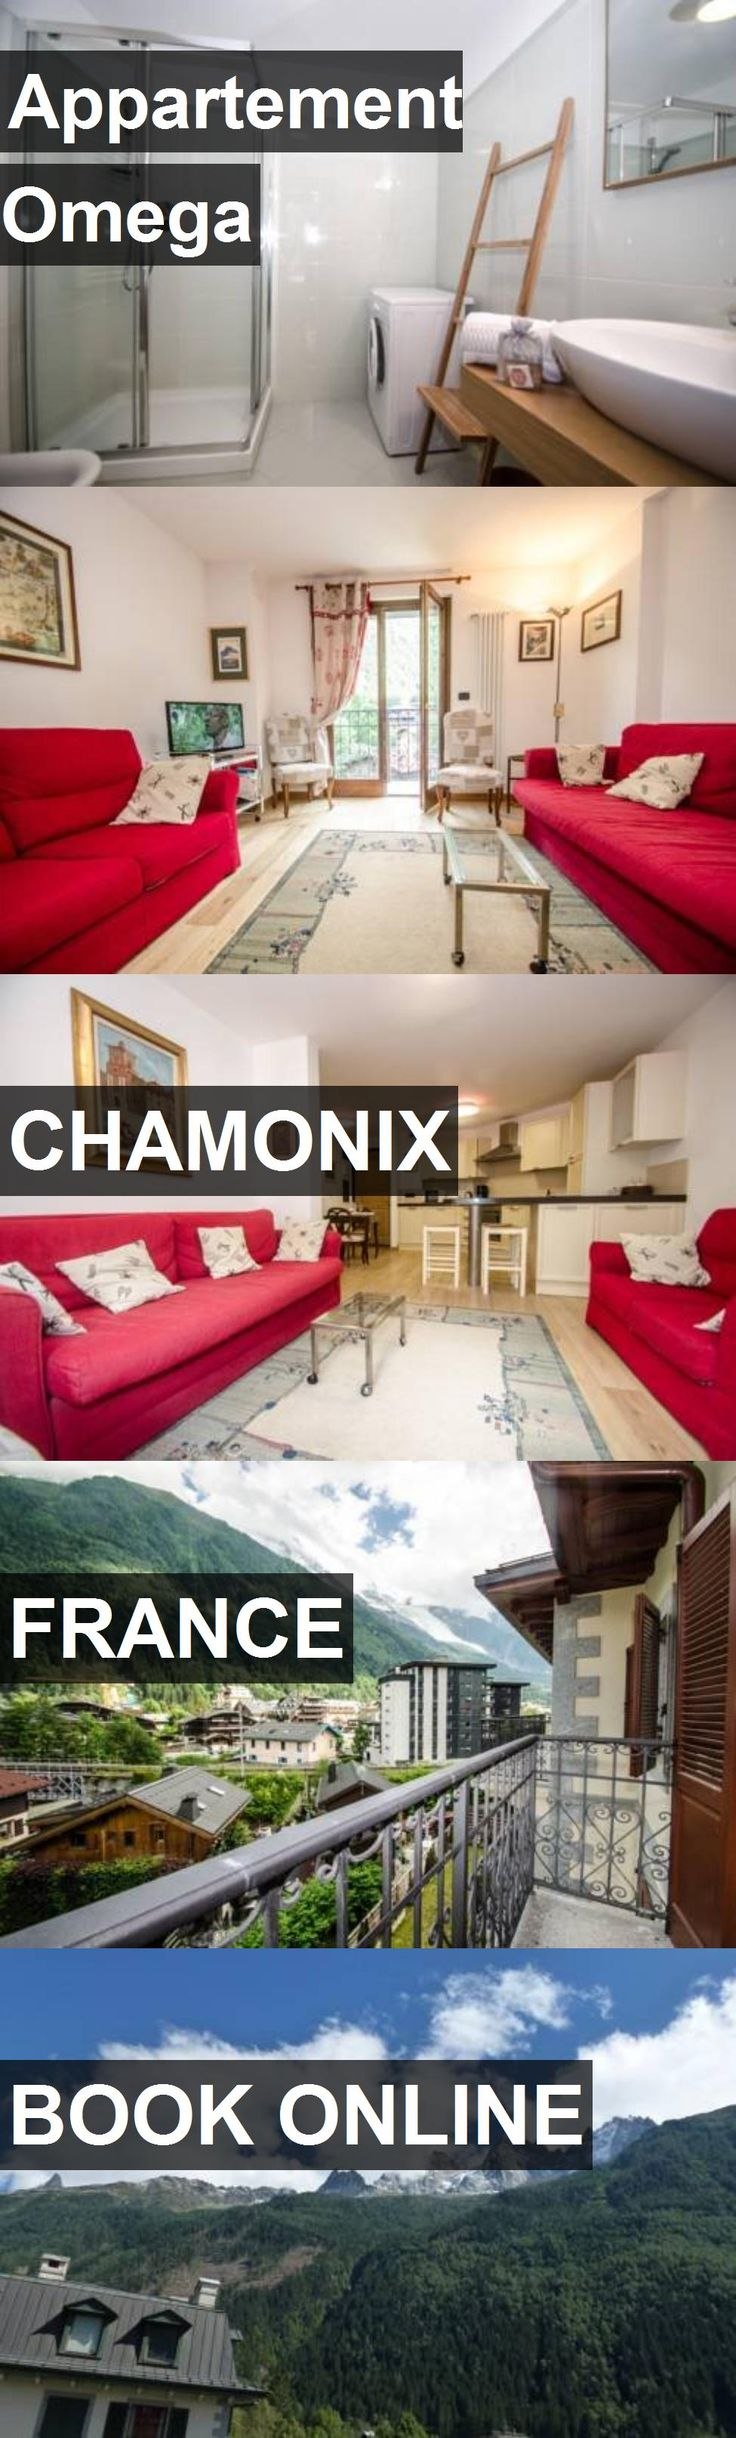 Hotel Appartement Omega in Chamonix, France. For more information, photos, reviews and best prices please follow the link. #France #Chamonix #travel #vacation #hotel